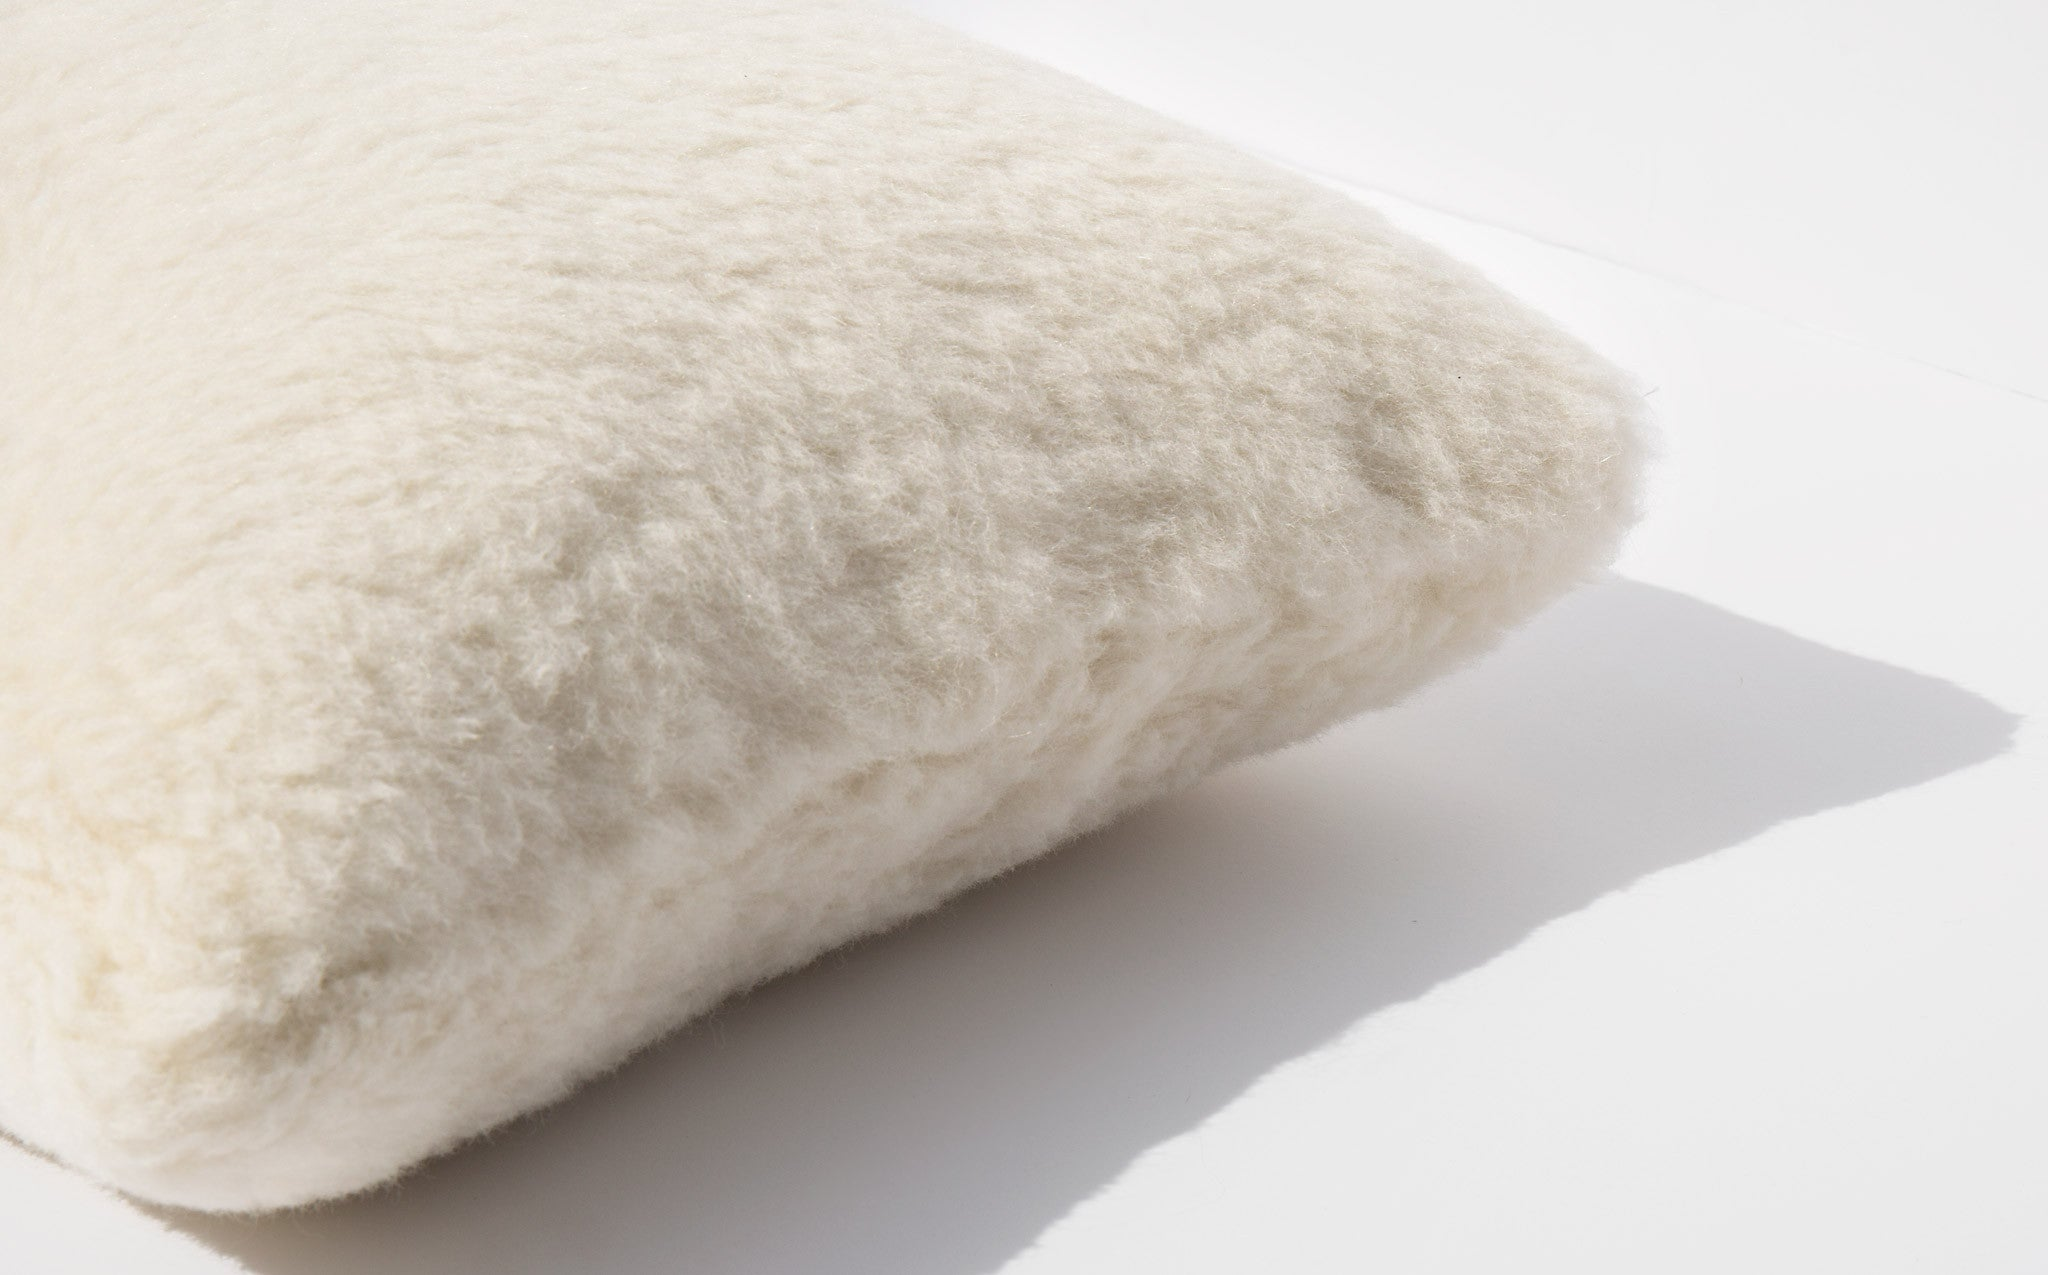 Fells / Åndes Fjun Levätä Alpaca Pillow kindred black